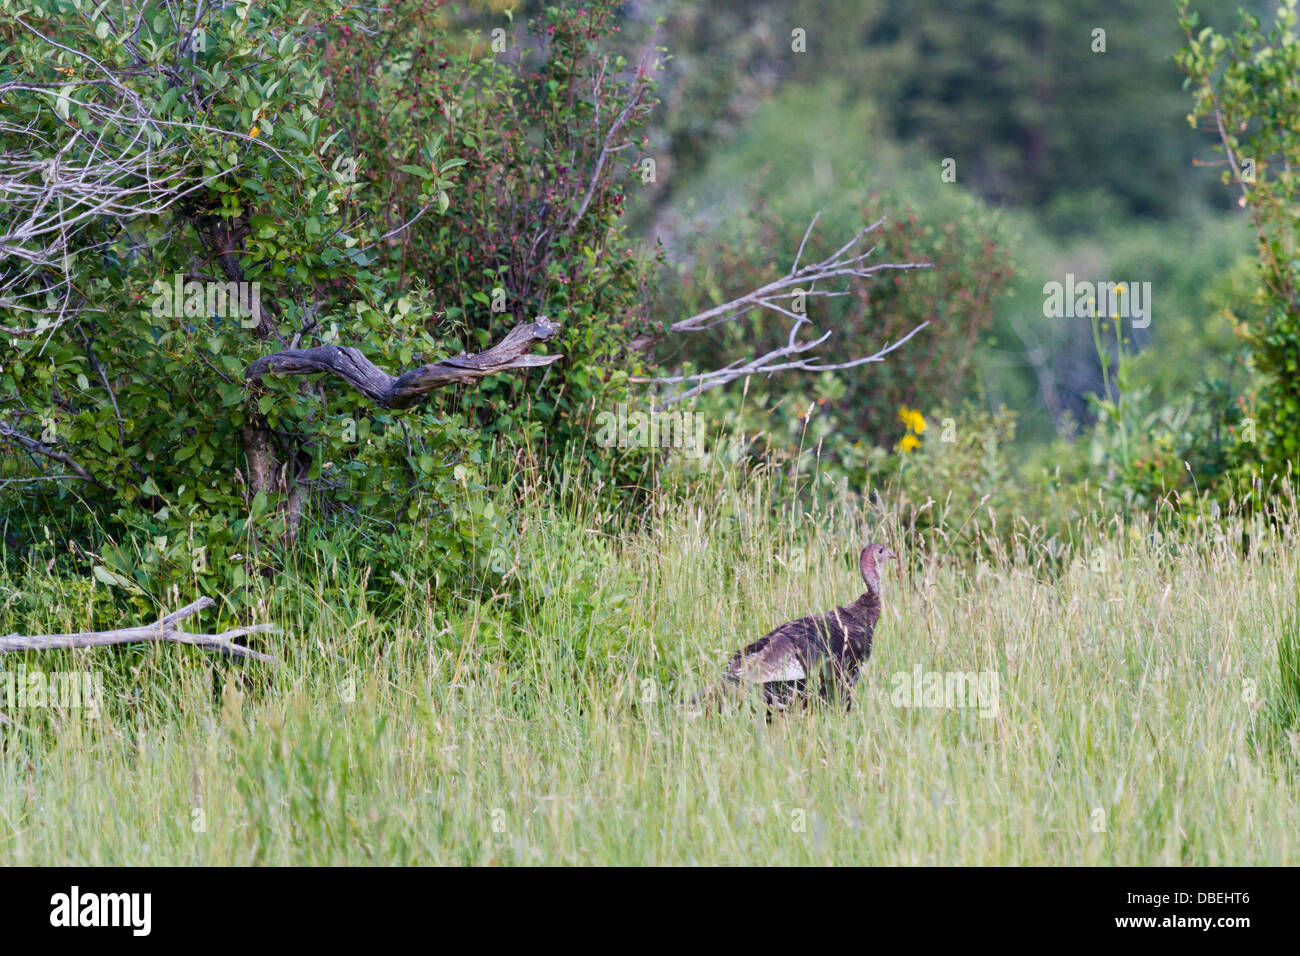 Wild turkey with little chicks in the field. - Stock Image